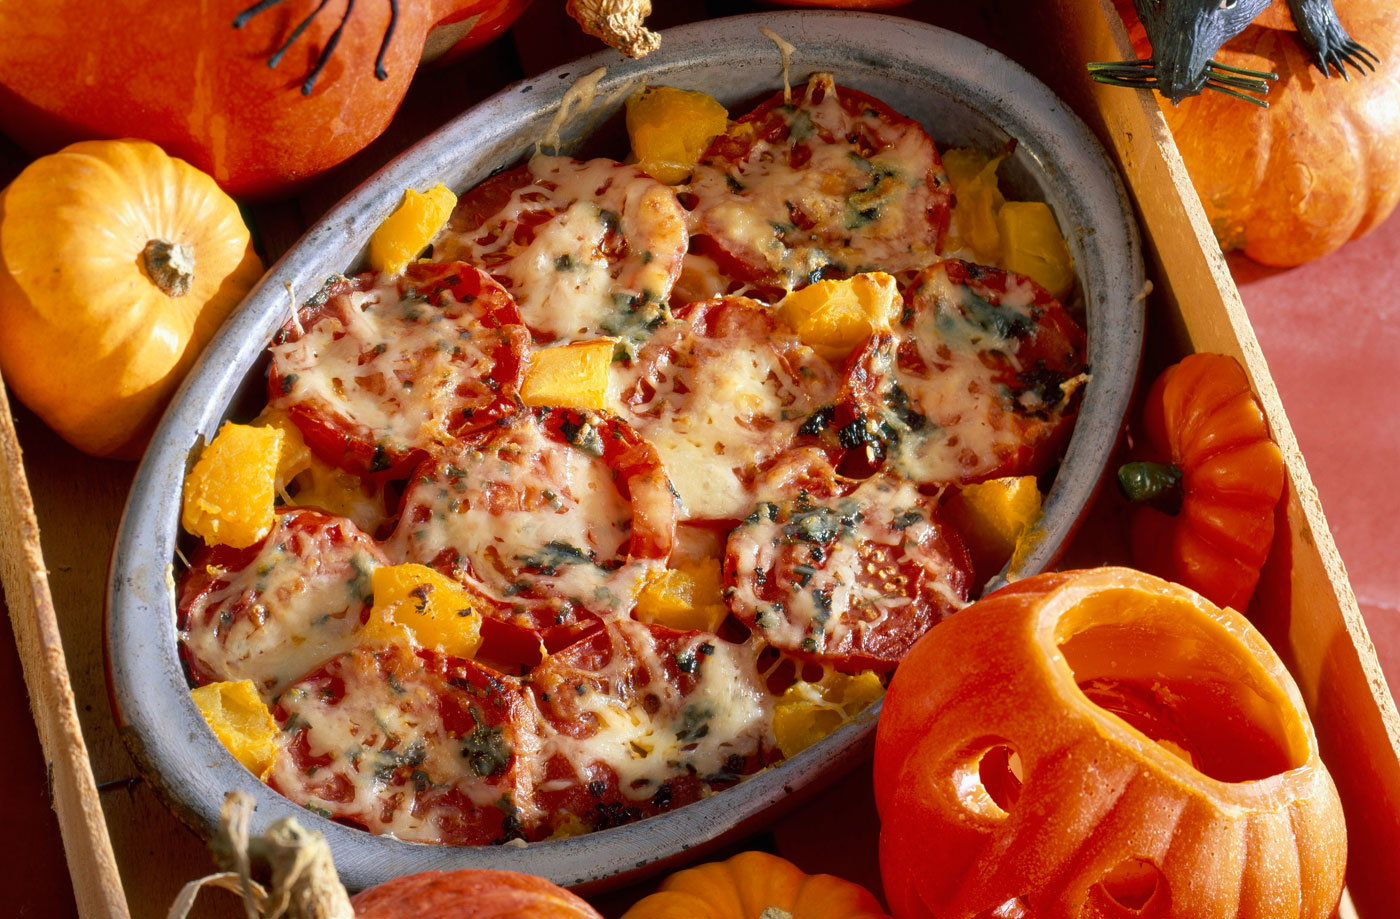 Pumpkin bake recipe